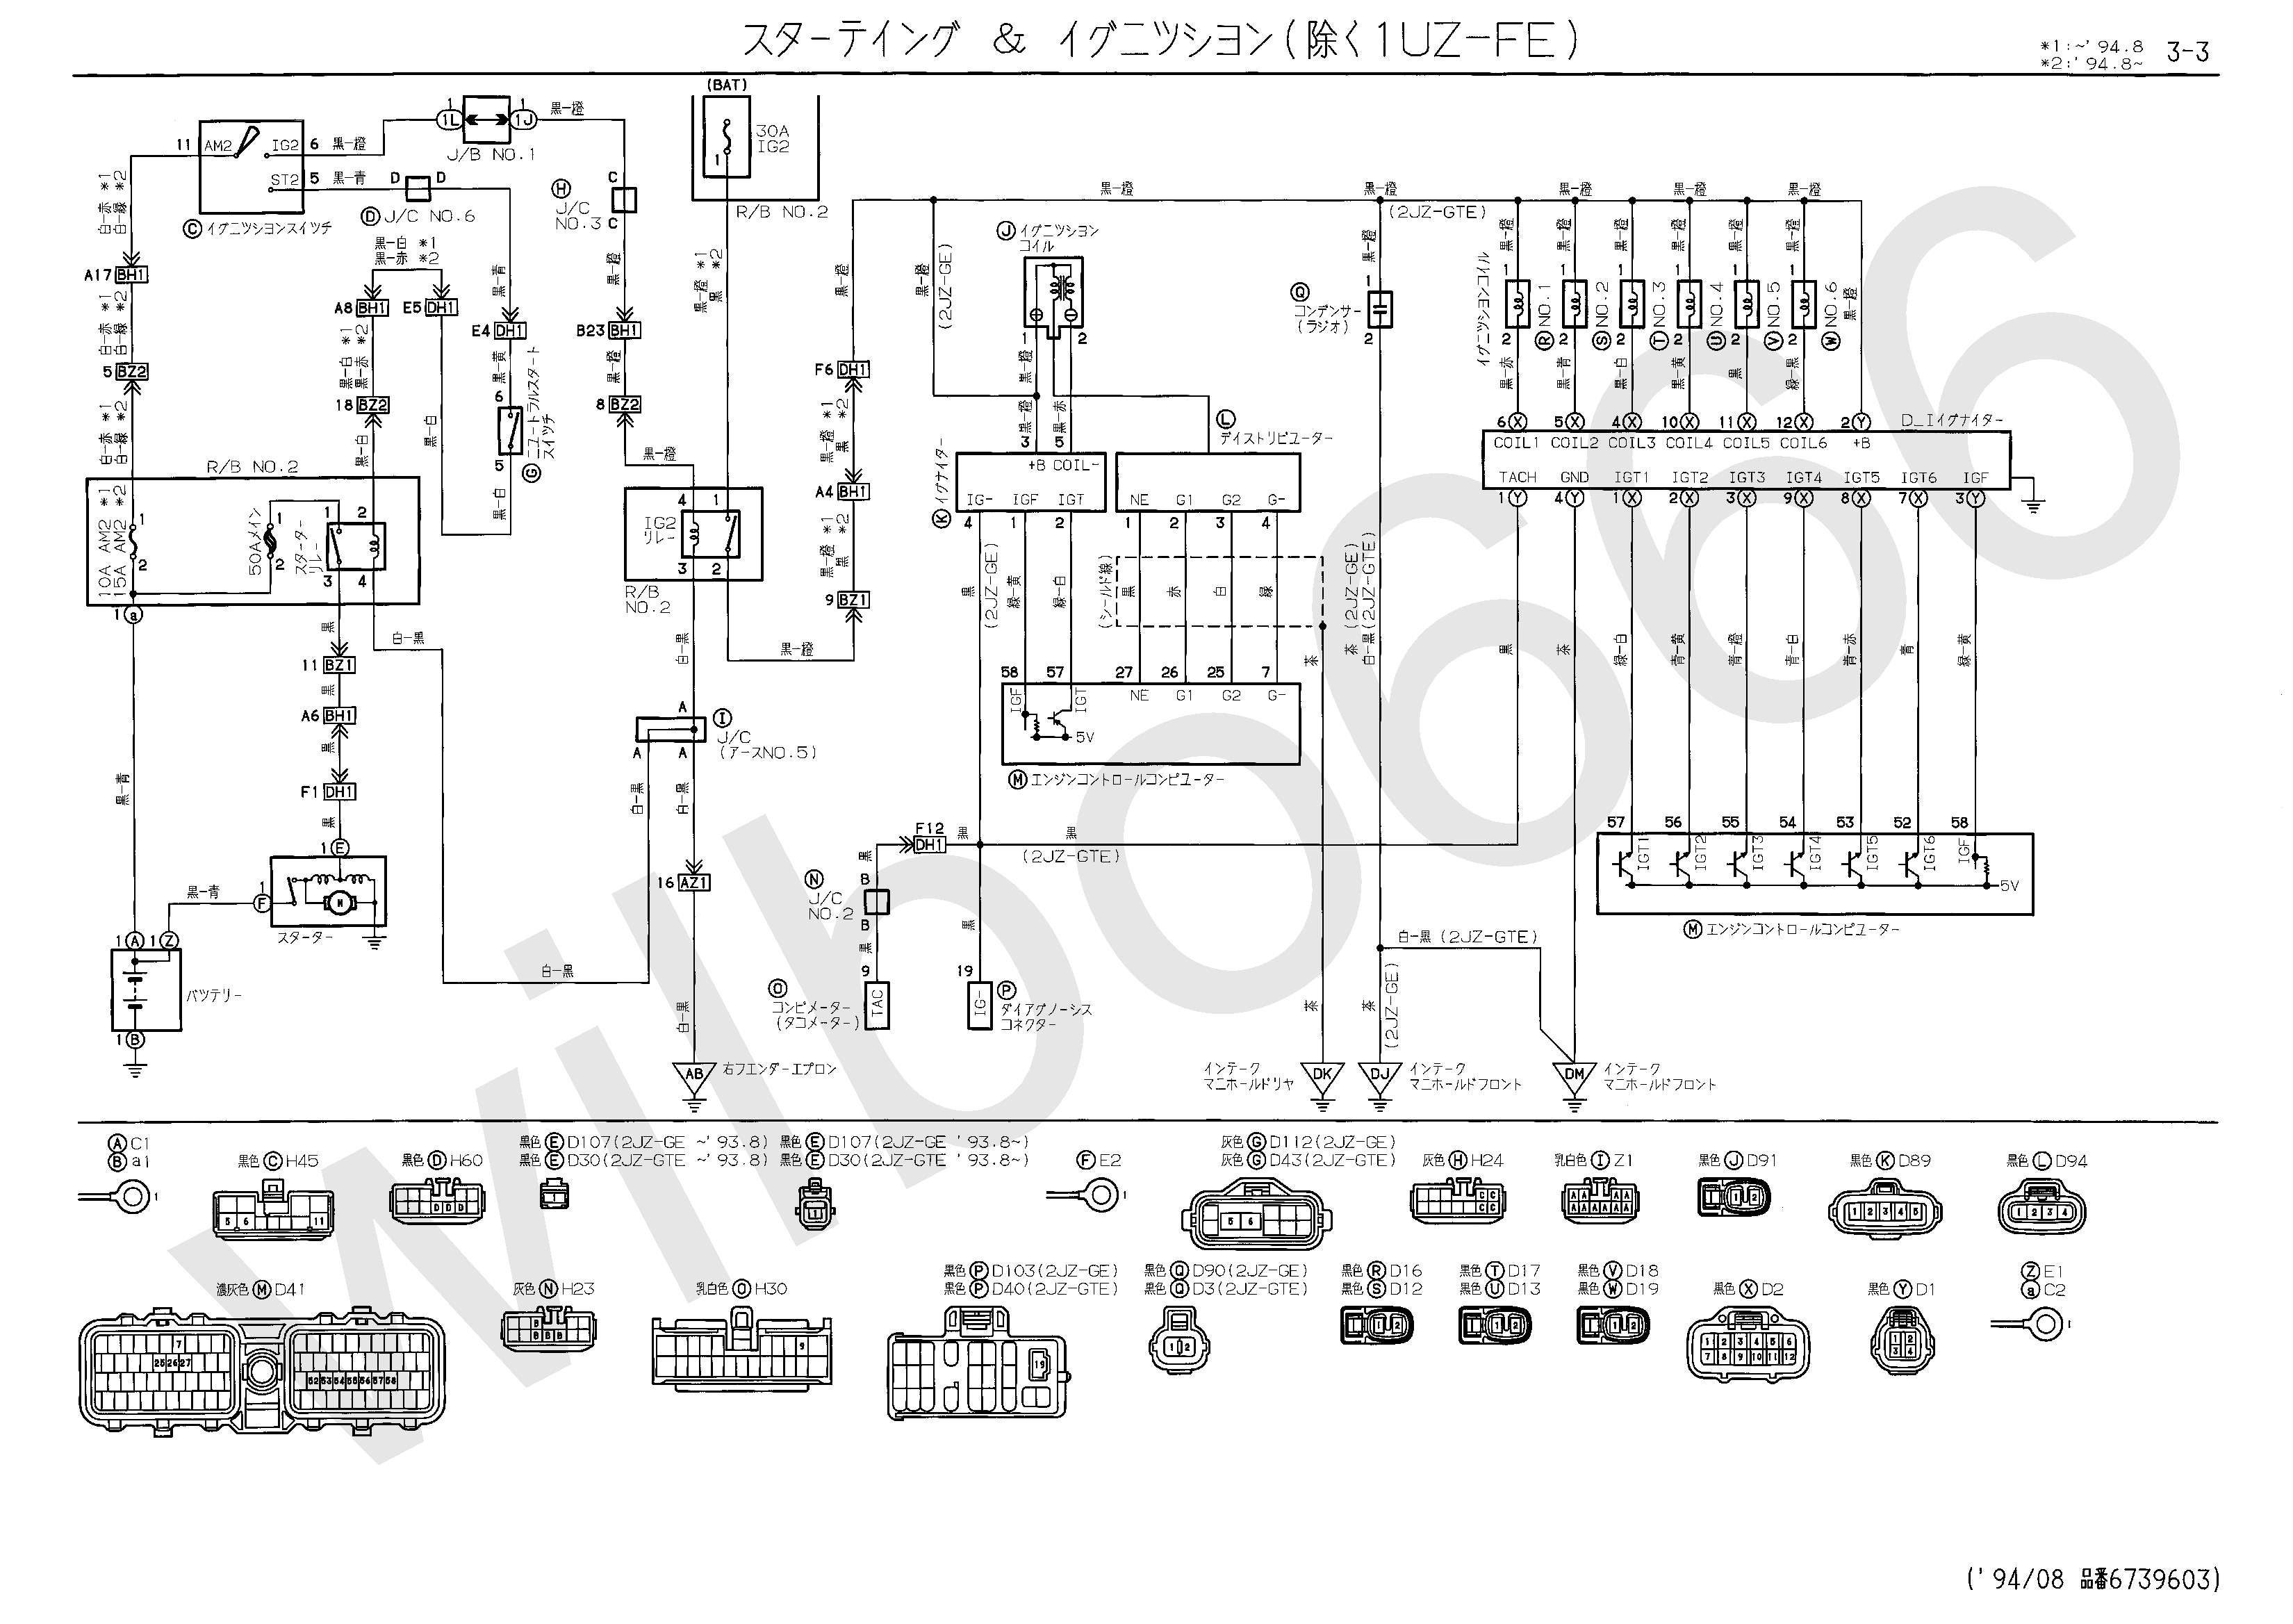 JZS14%23%2C UZS14%23 Electrical Wiring Diagram 6739604 3 3?resize\\\\\\\\\\\\\\\\\\\\\\\\\\\\\\\\\\\\\\\\\\\\\\\\\\\\\\\\\\\\\\\\\\\\\\\\\\\\\\\\\\\\\\\\\\\\\\\\\\\\\\\\\\\\\\\\\\\\\\\\\\\\\\\\\\\\\\\\\\\\\\\\\\\\\\\\\\\\\\\\\\\\\\\\\\\\\\\\\\\\\\\\\\\\\\\\\\\\\\\\\\\\\\\\\\\\\\\\\\\\\\\\\=665%2C471 jensen uv10 wiring harness diagram for rear view camera wiring jensen uv8020 wiring harness at bakdesigns.co